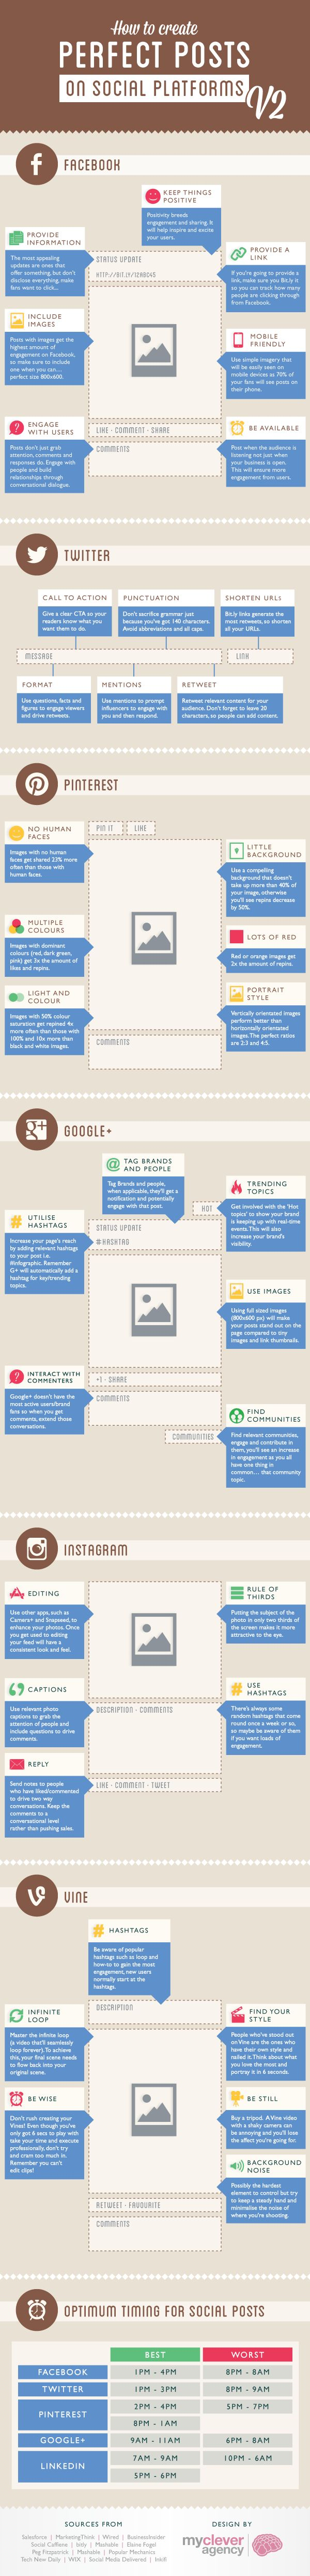 How to Create Perfect Social Media Posts [infographic] | How-to Social Media Graphics: Make Your Own Graphics!